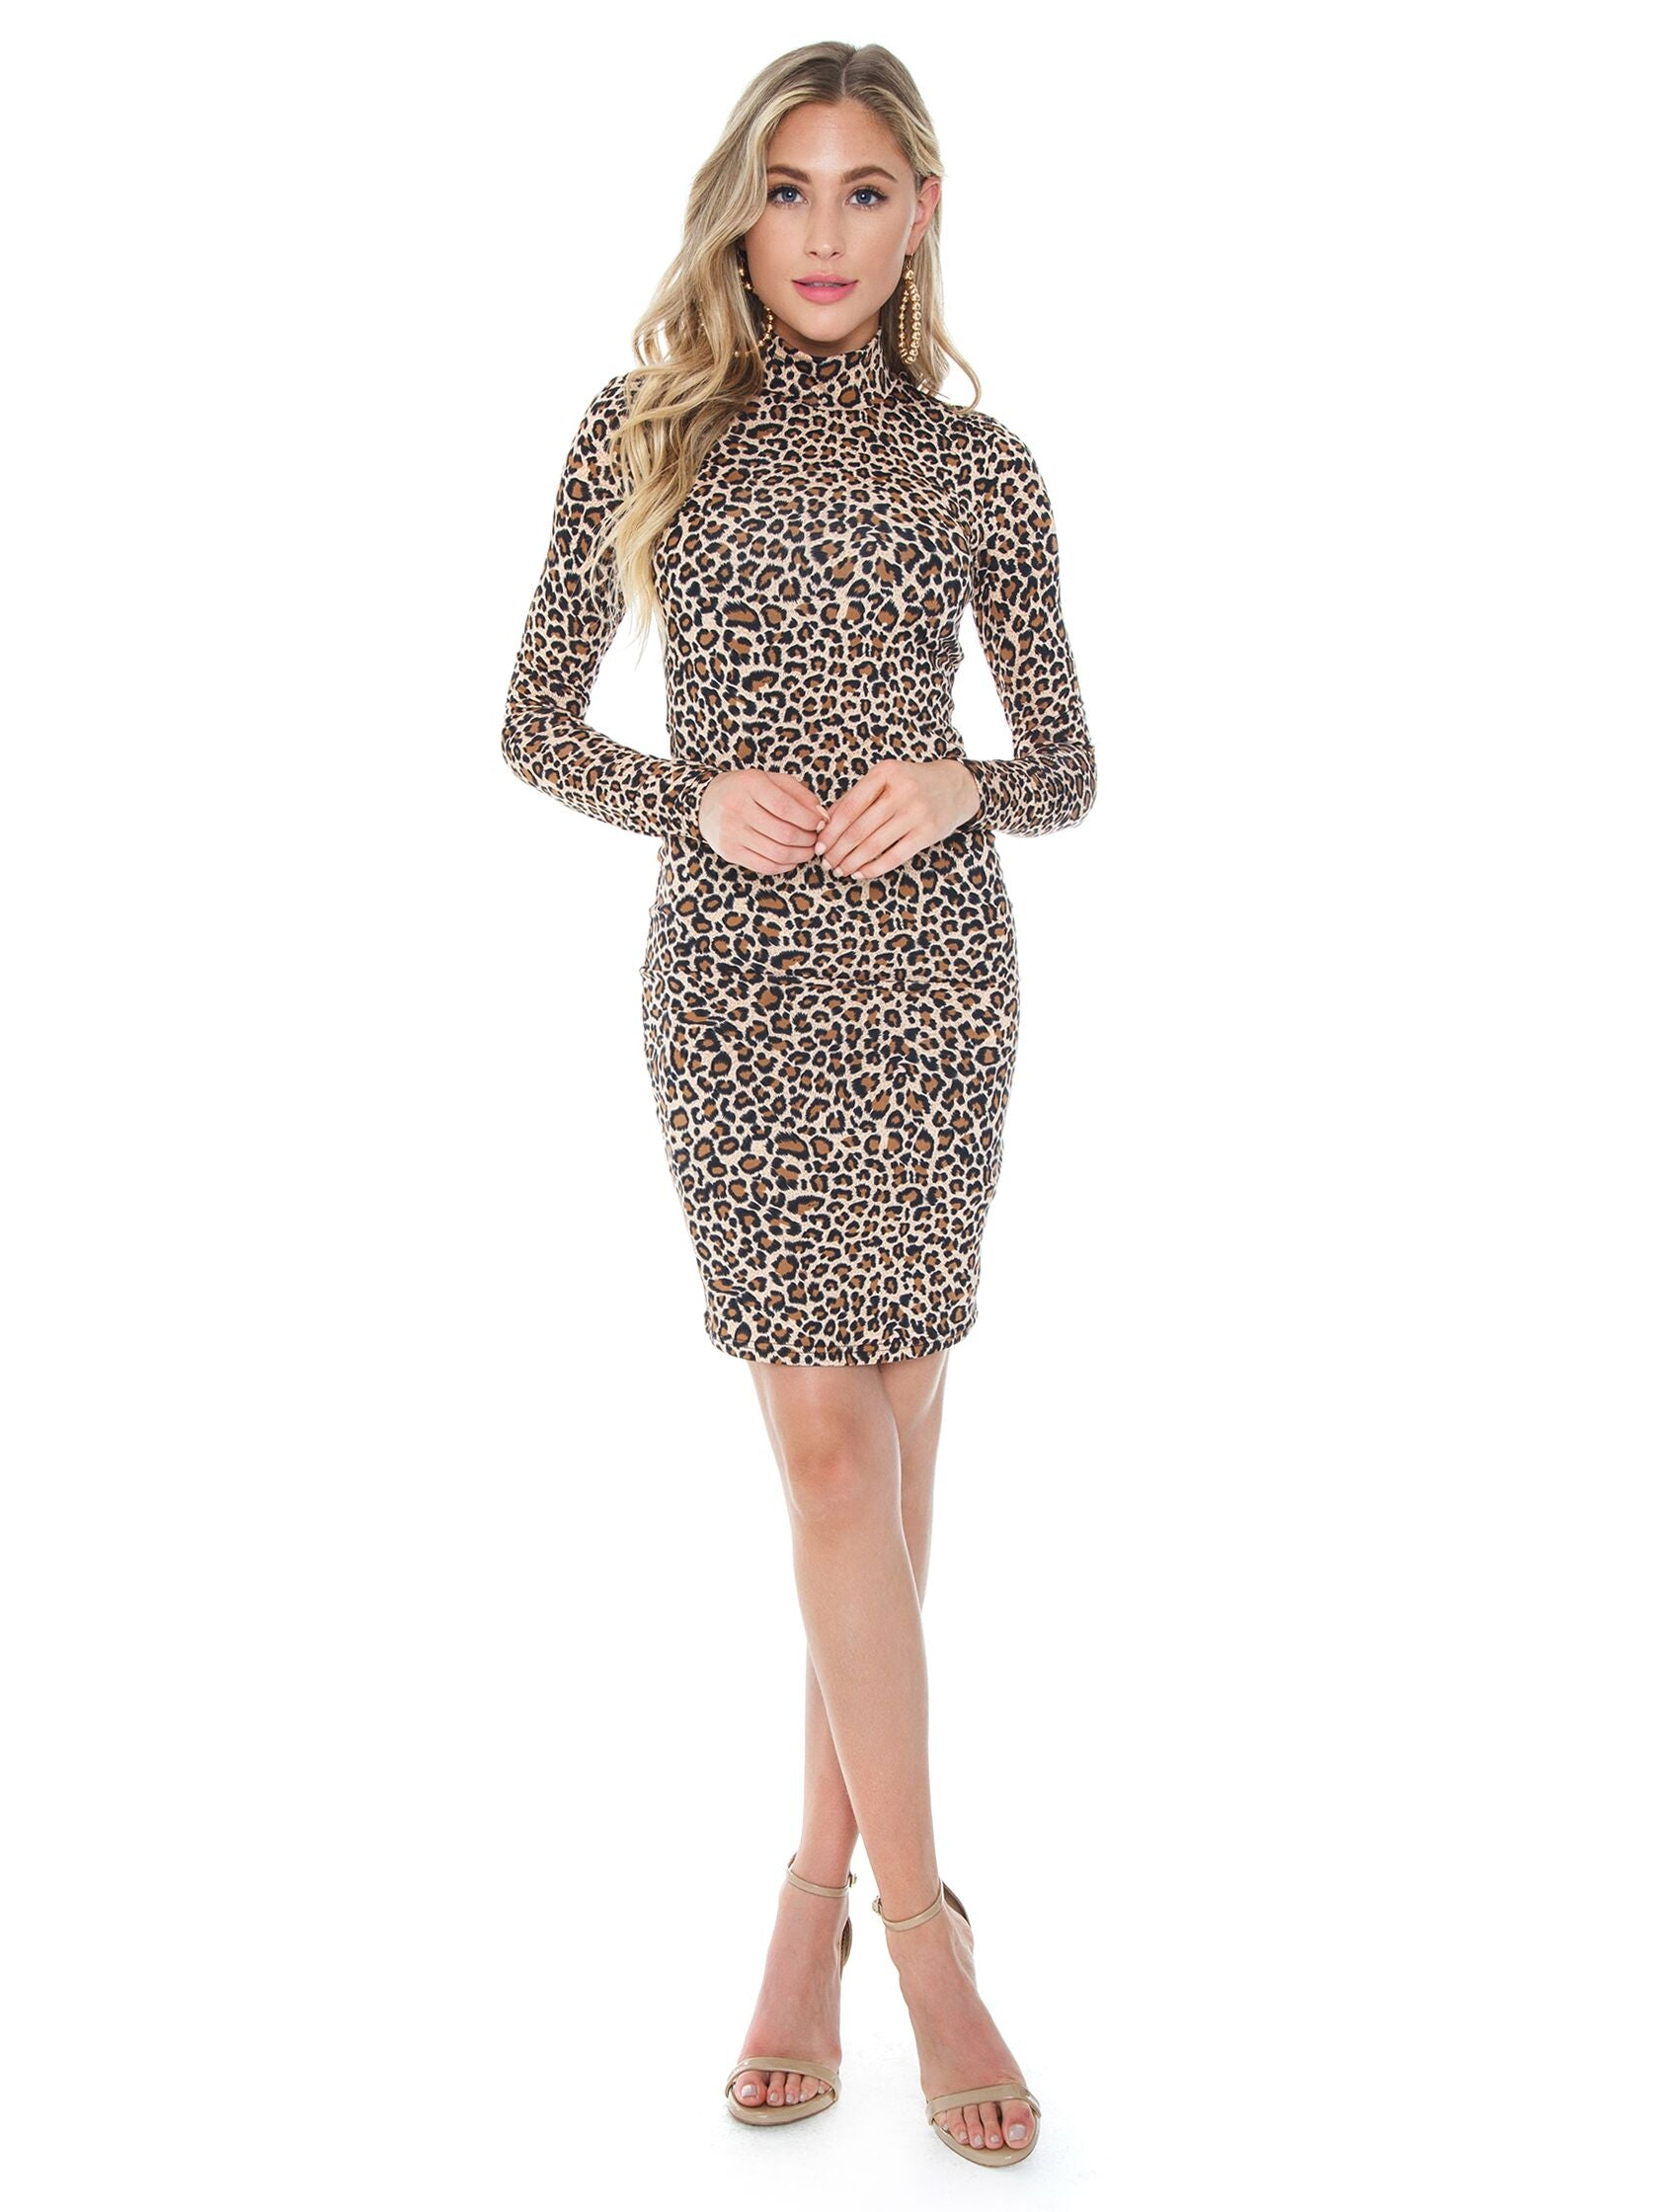 Girl outfit in a dress rental from BARDOT called Leopard High Neck Dress